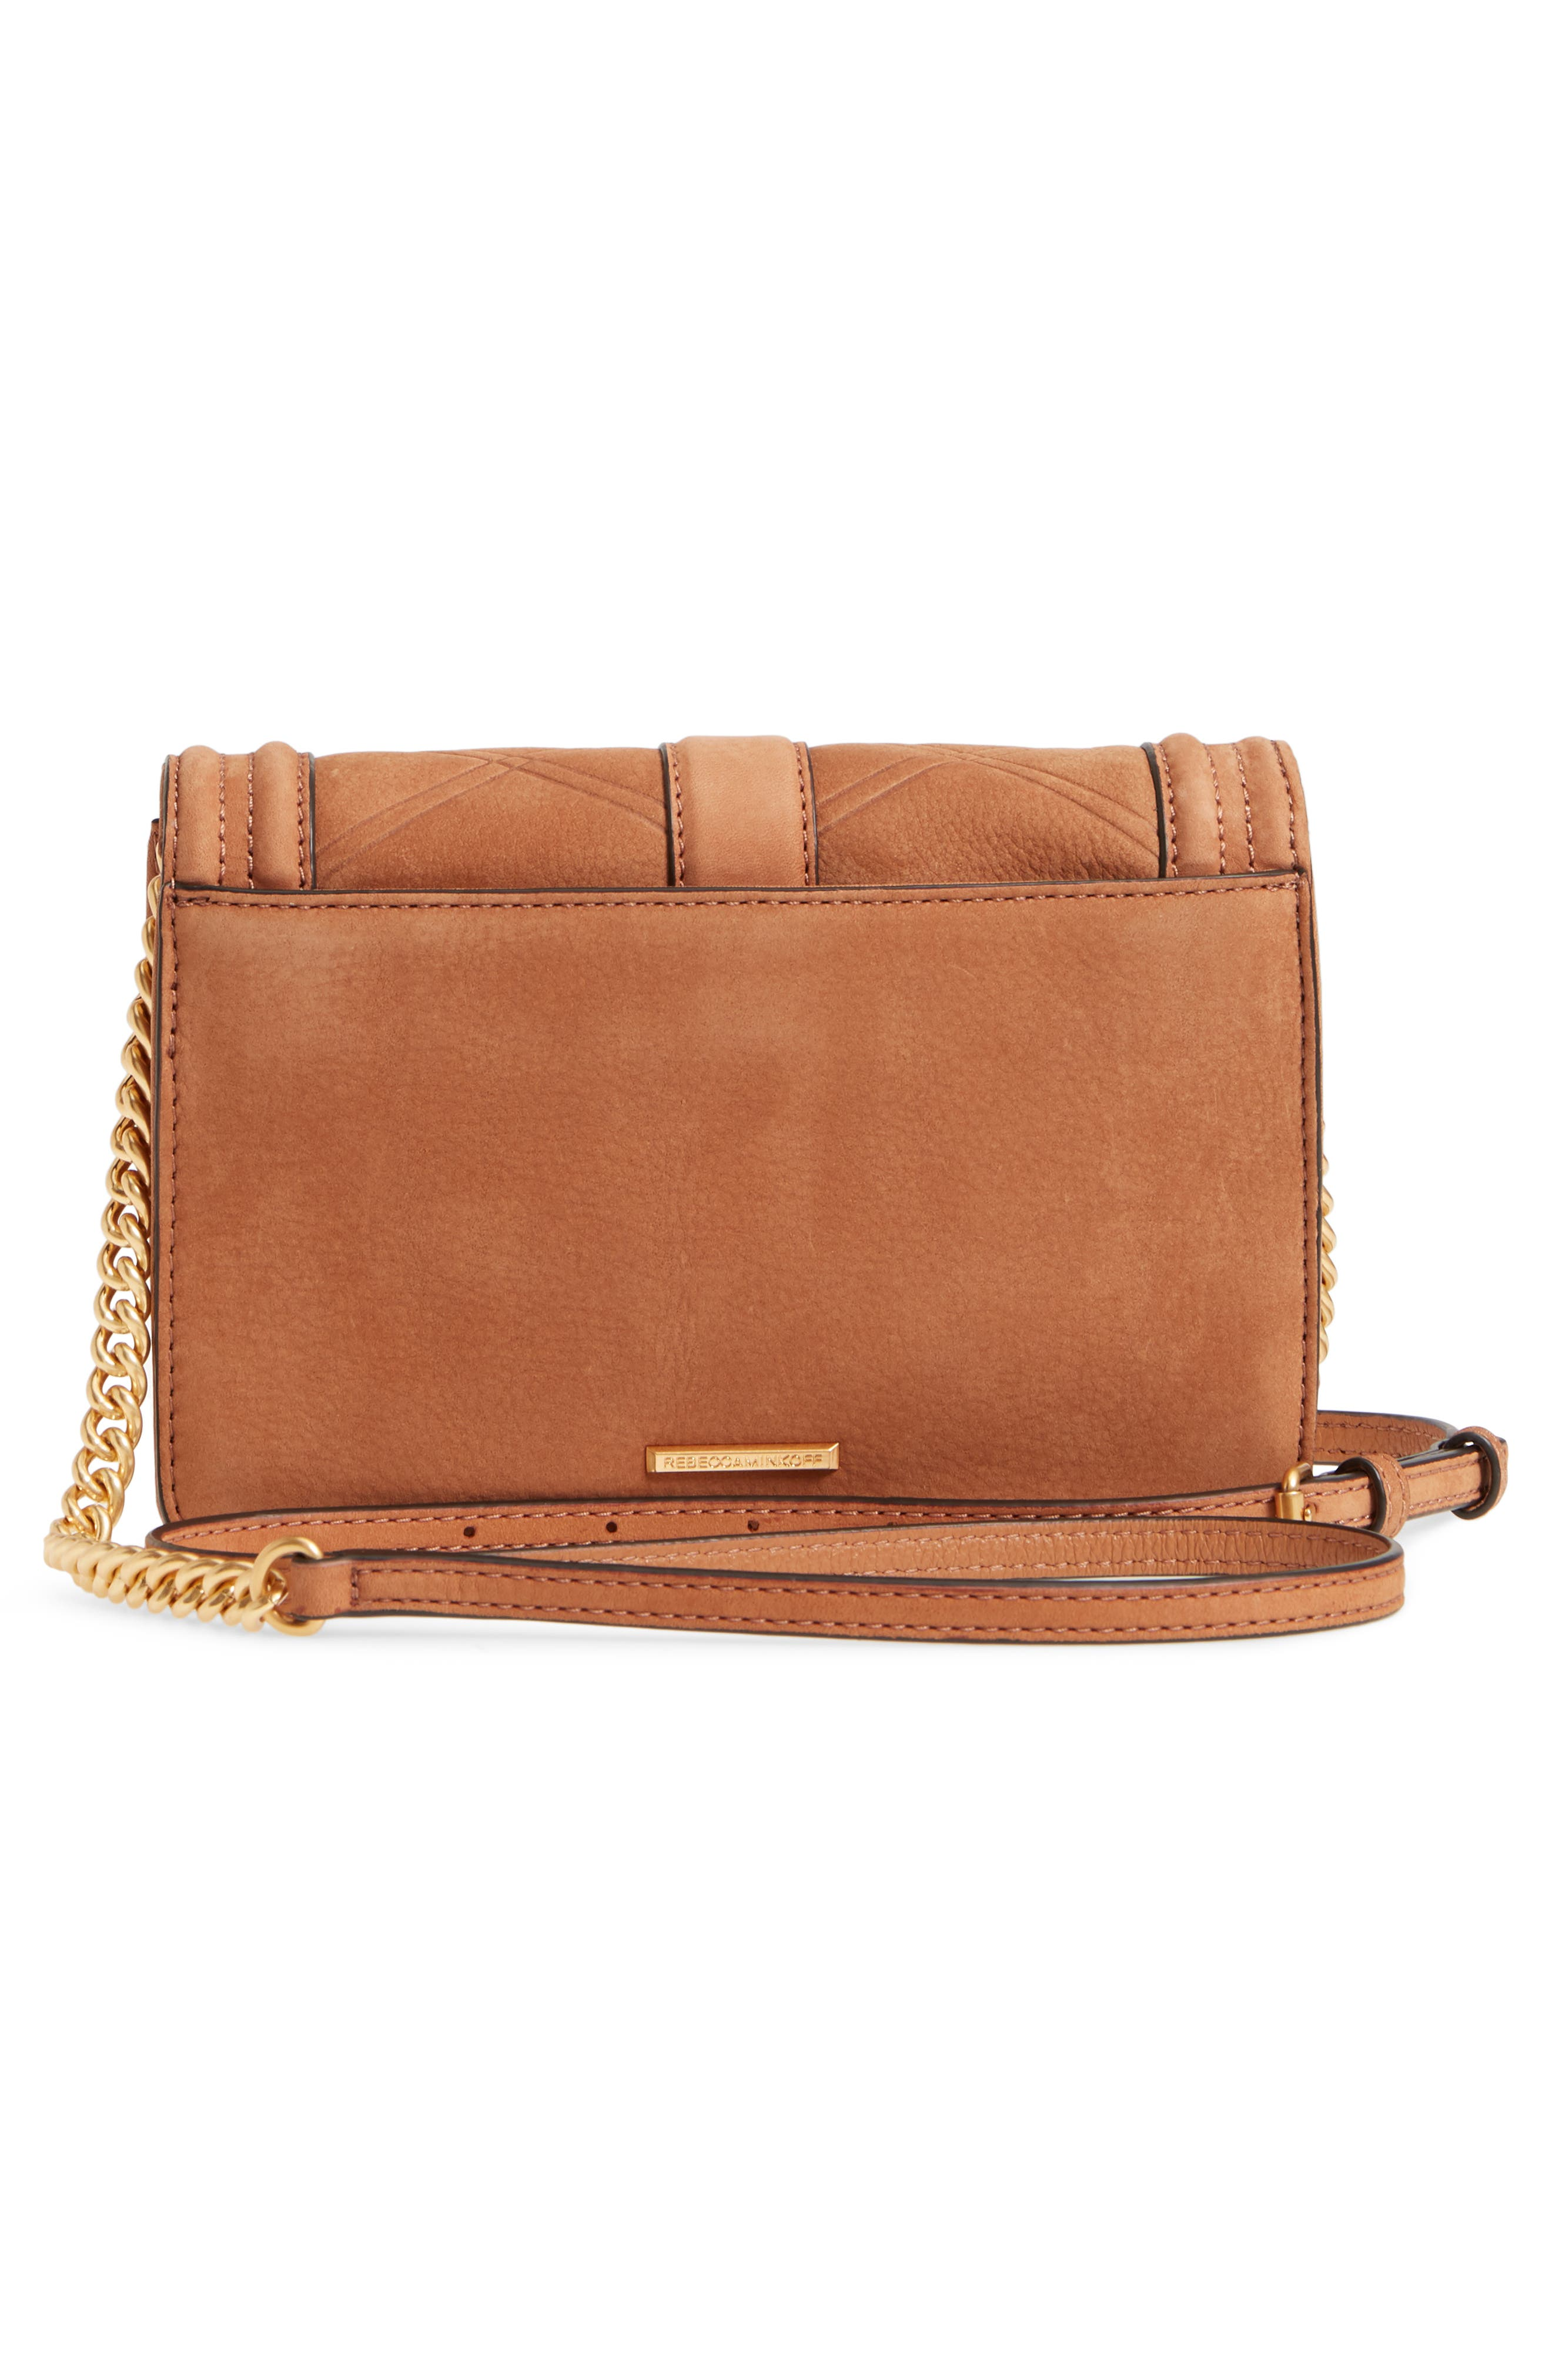 Small Love Nubuck Leather Crossbody Bag,                             Alternate thumbnail 3, color,                             230